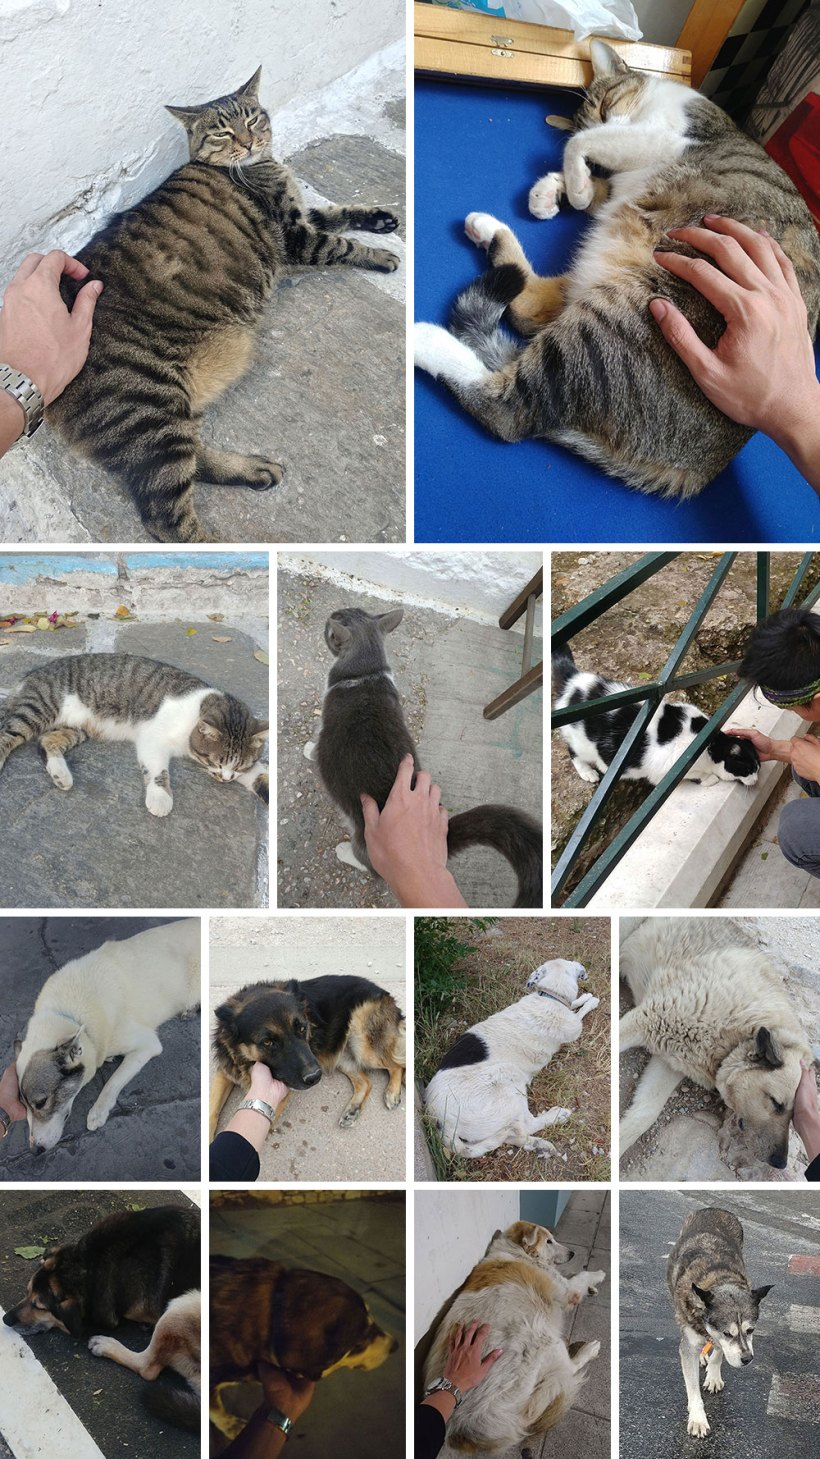 The cats and dogs of Greece